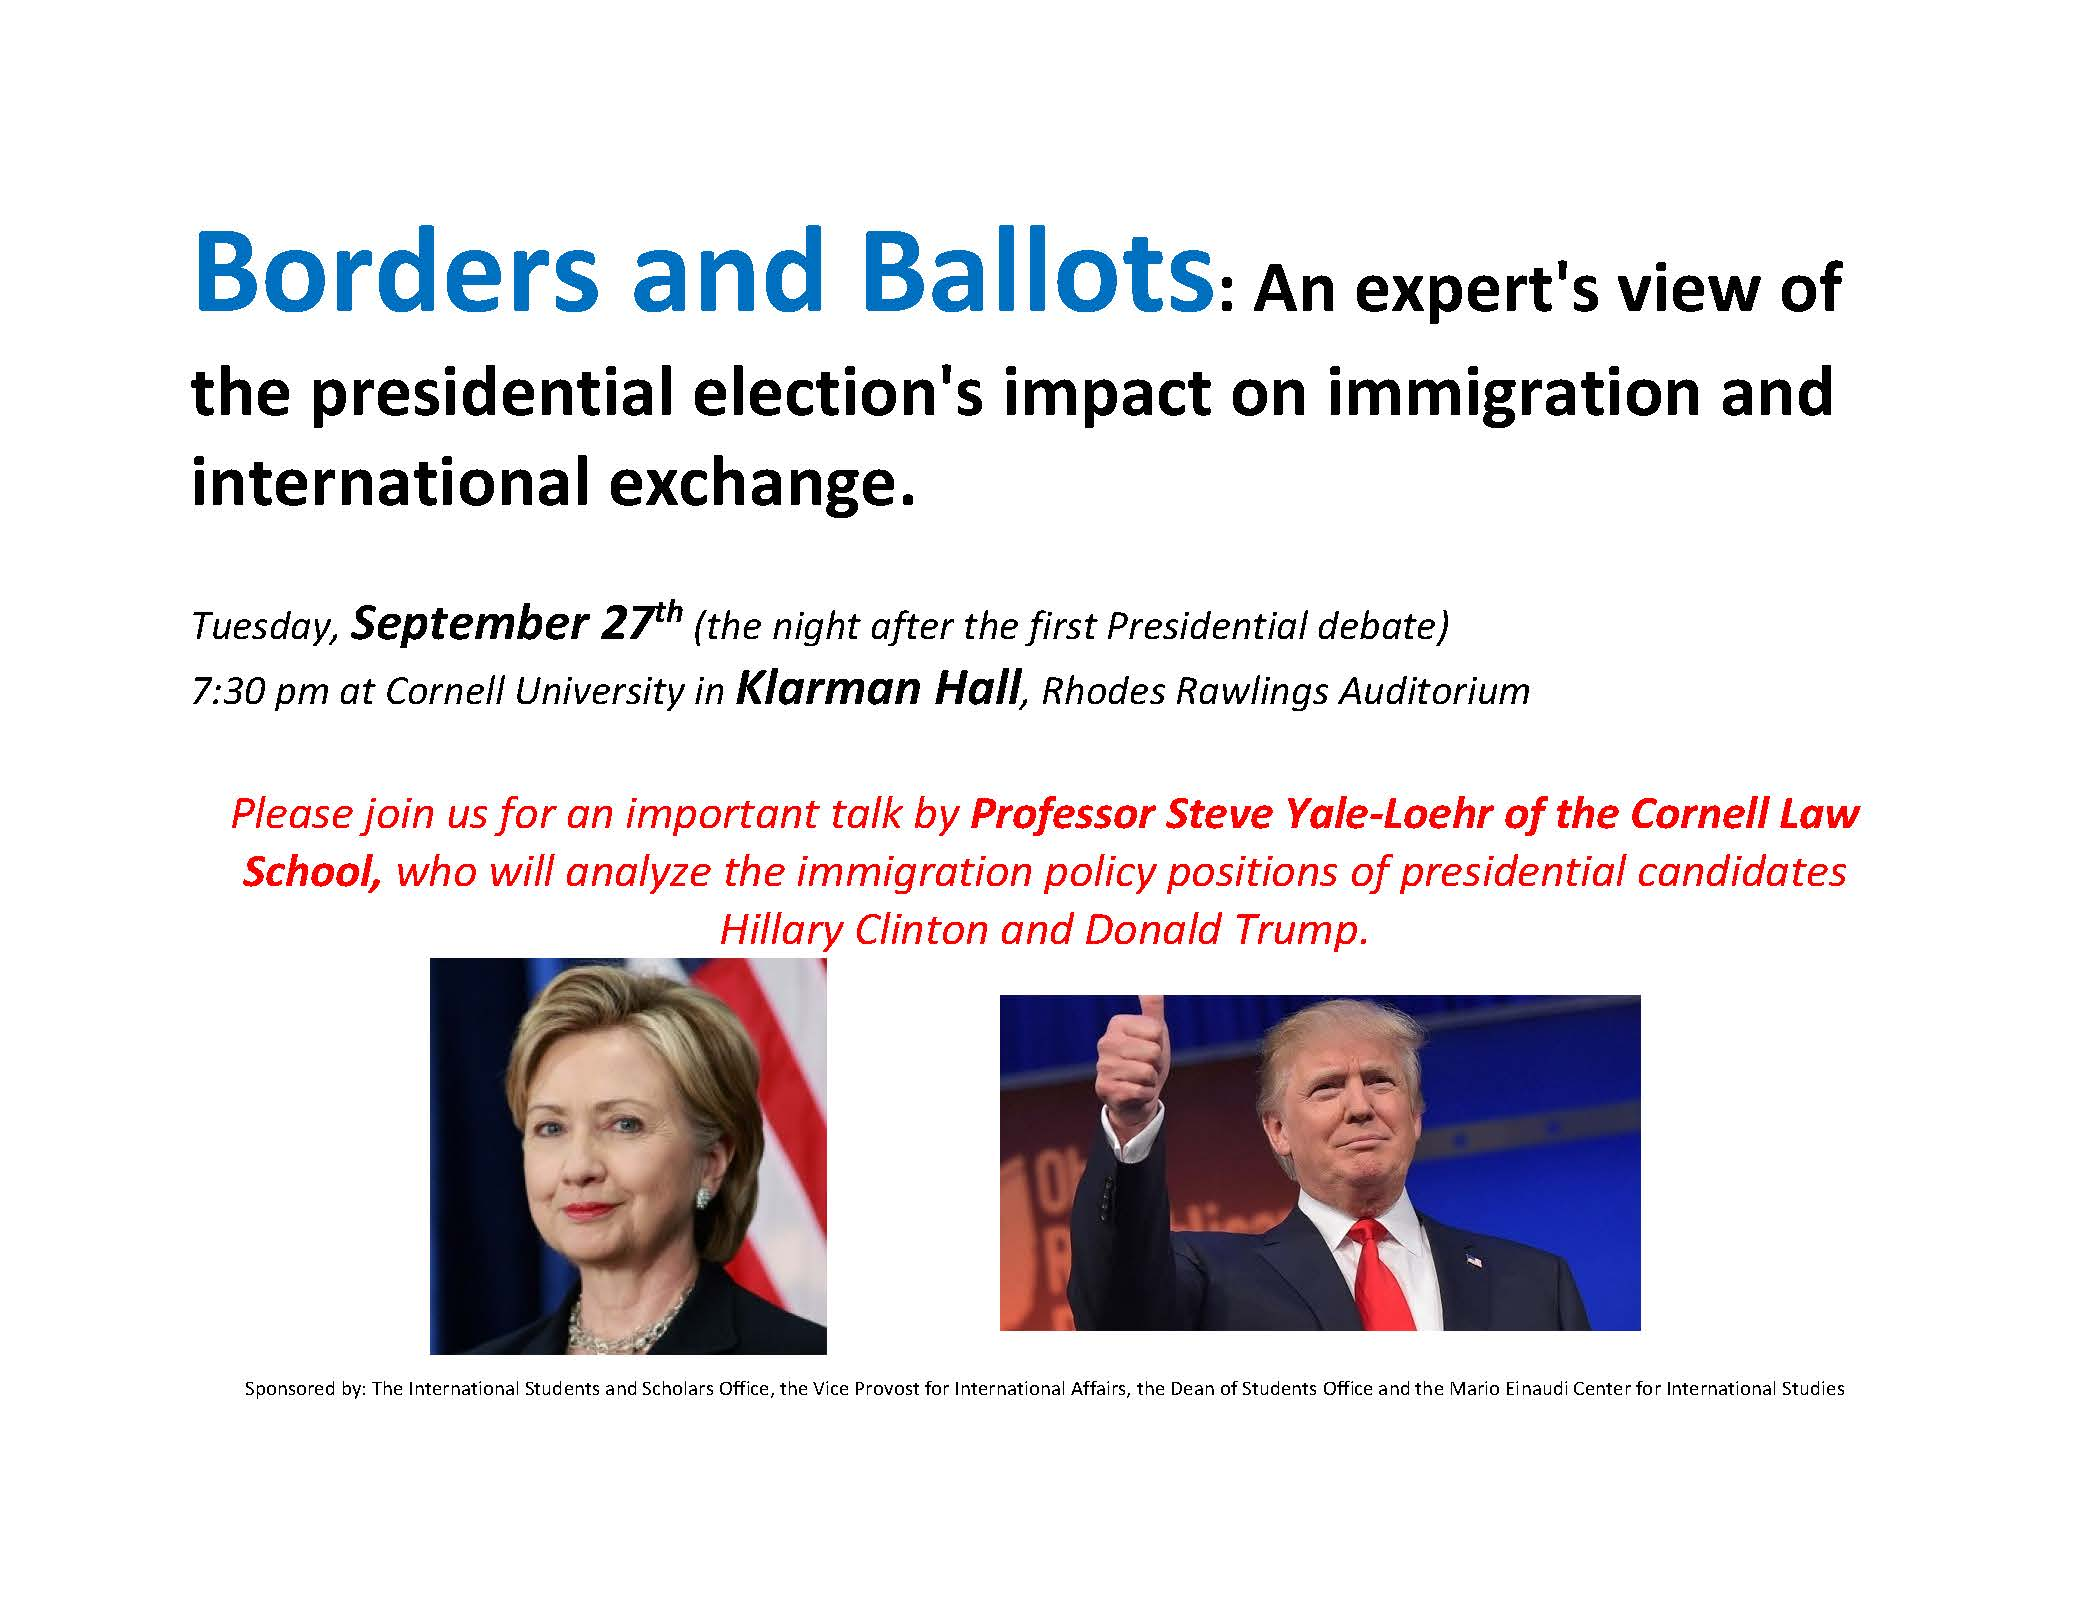 Borders and Ballots: An expert's view of the presidential election's impact on immigration and international exchange